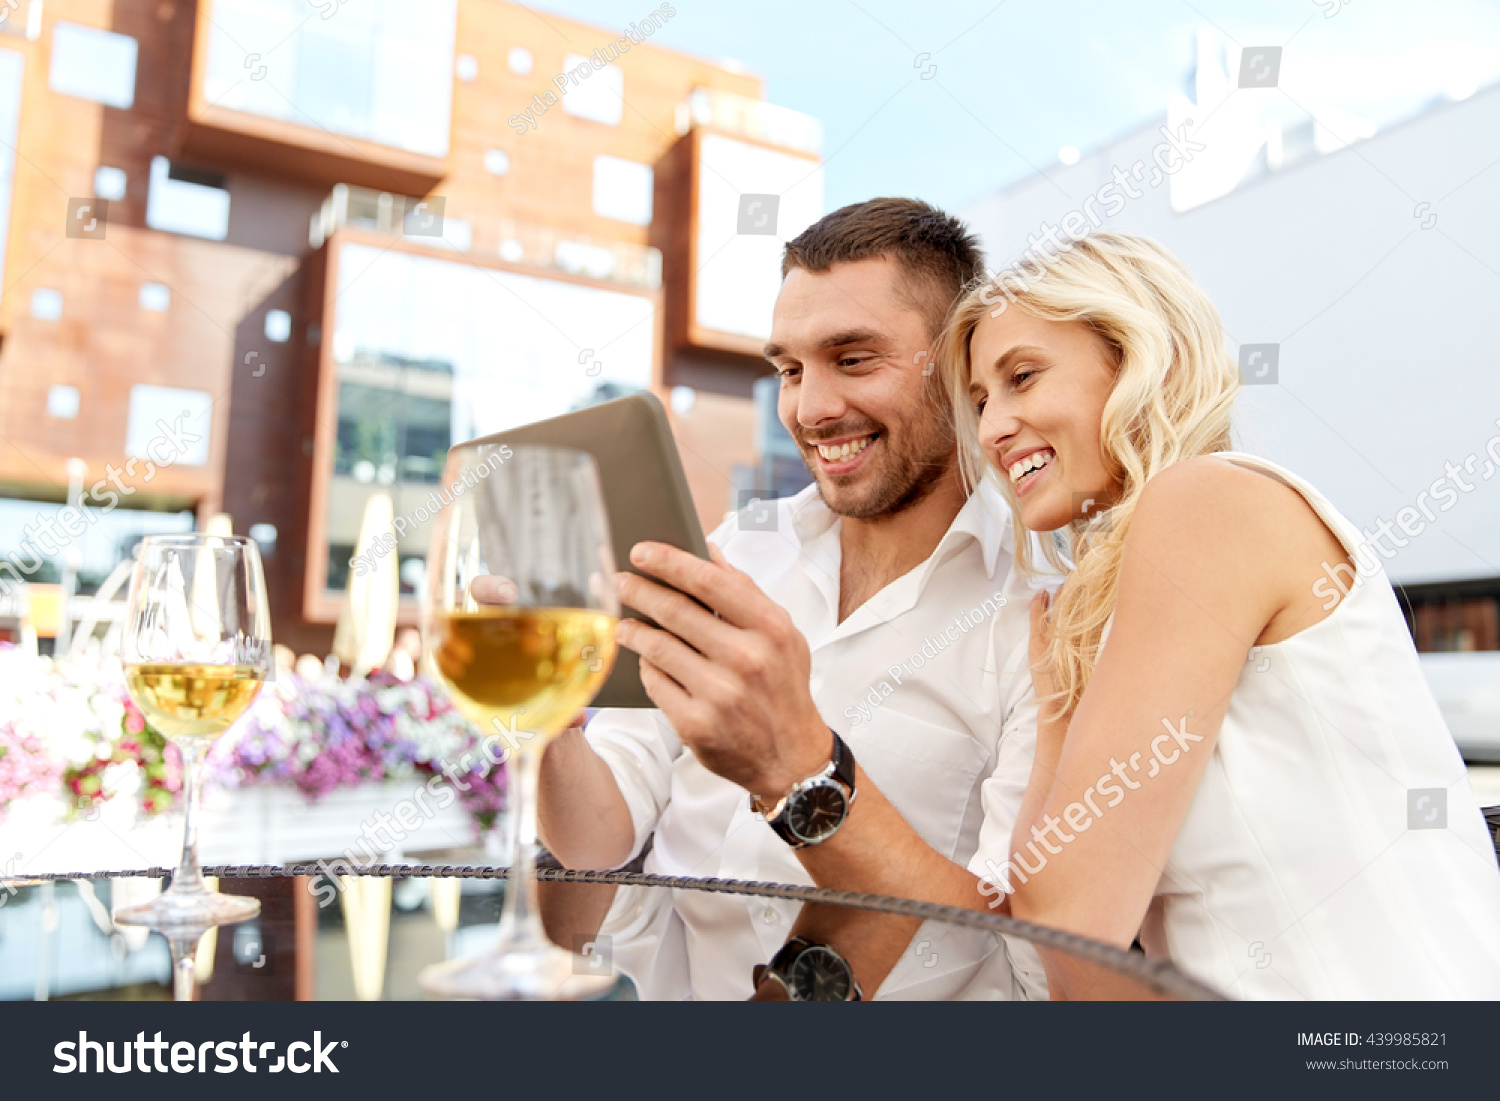 love technology and dating